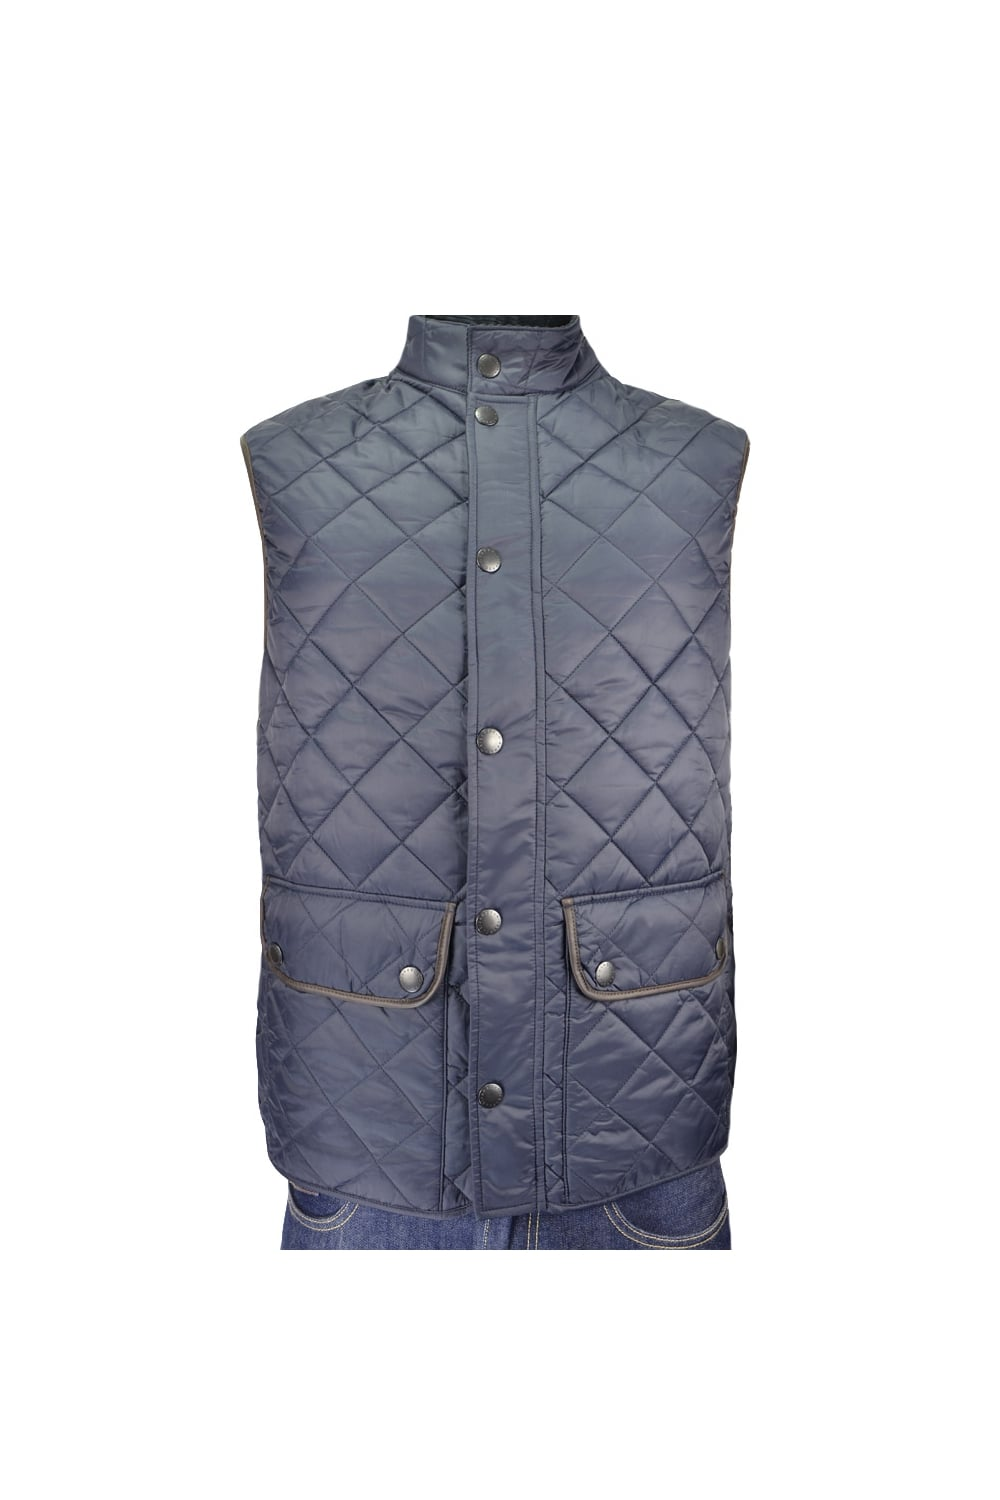 Barbour Tantallon Quilted Gilet - Clothing from Michael Stewart ... : quilted gillet - Adamdwight.com